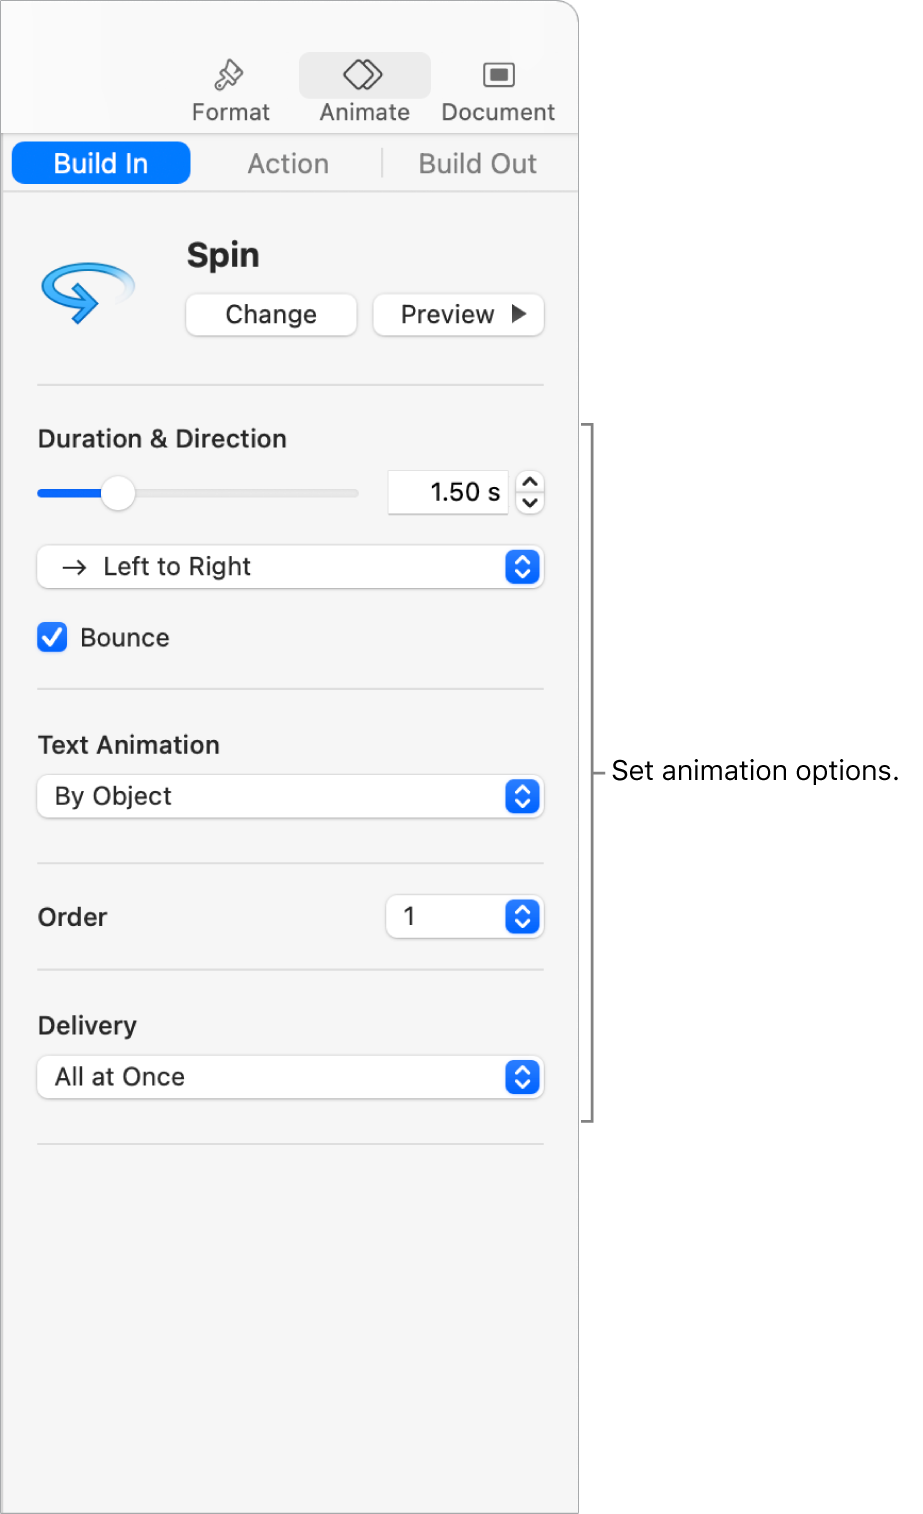 Build in options in the Animate section of the sidebar.